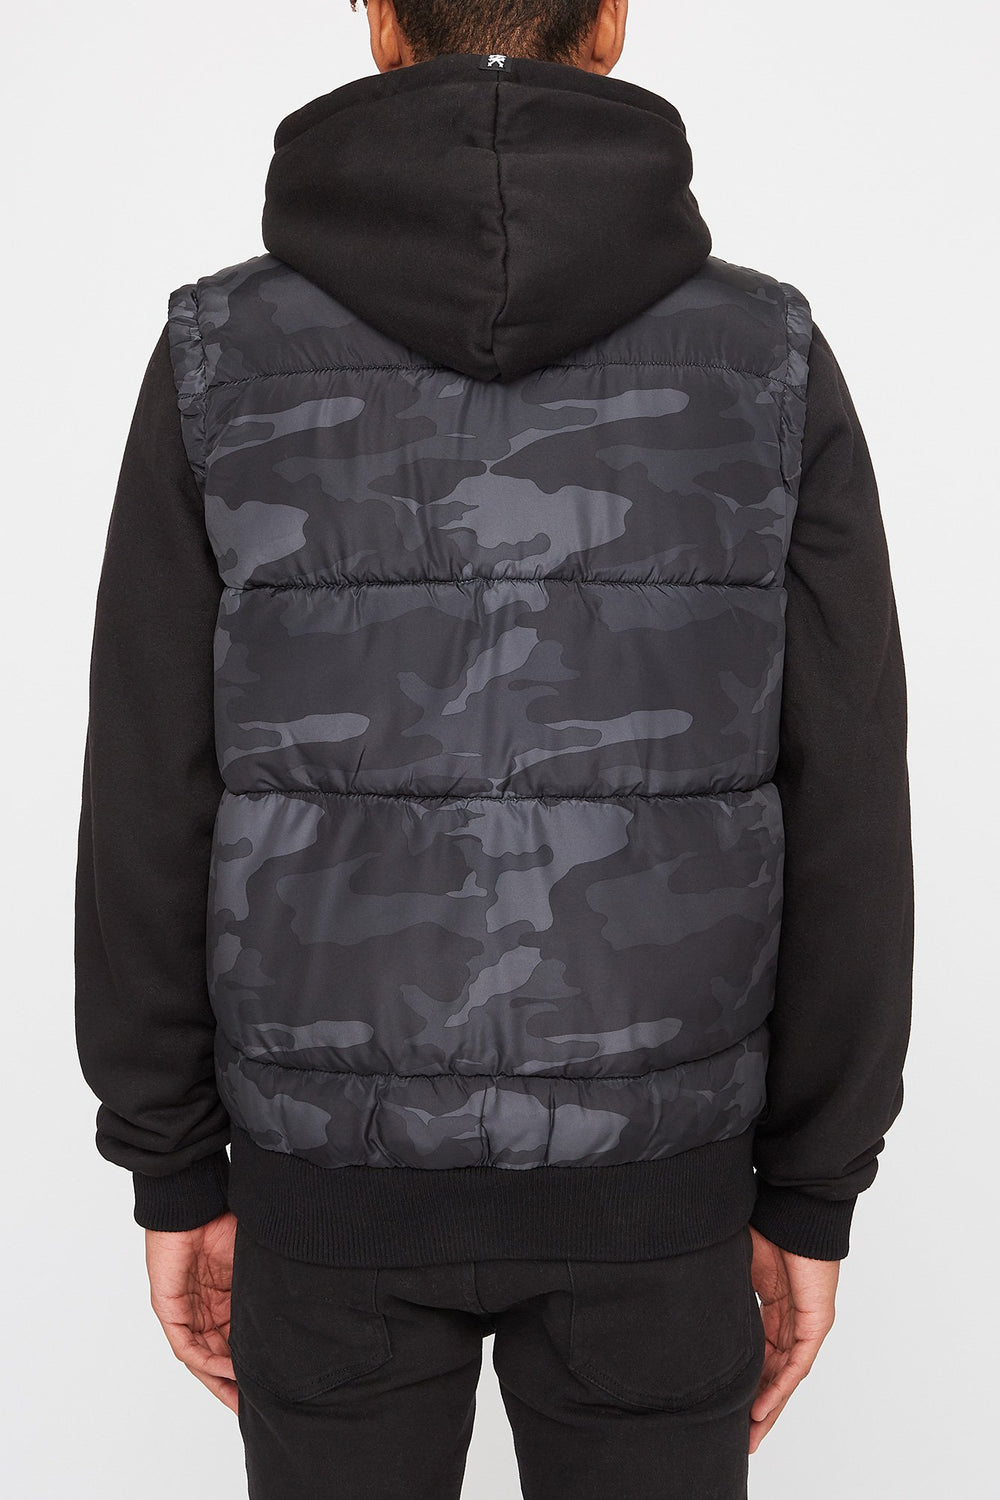 Zoo York Mens Hooded Puffer Vest Black with White